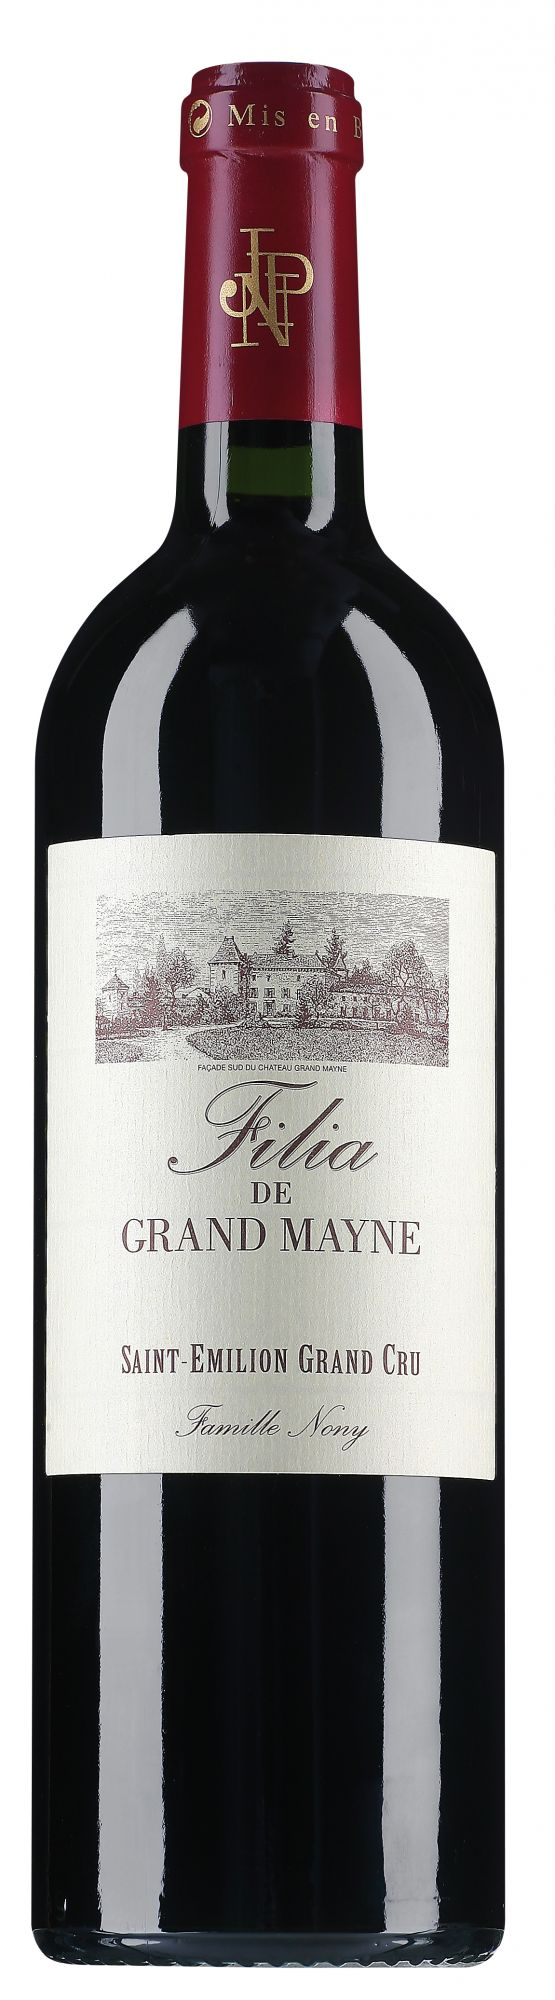 Filia de Grand Mayne Saint-Émilion Grand Cru